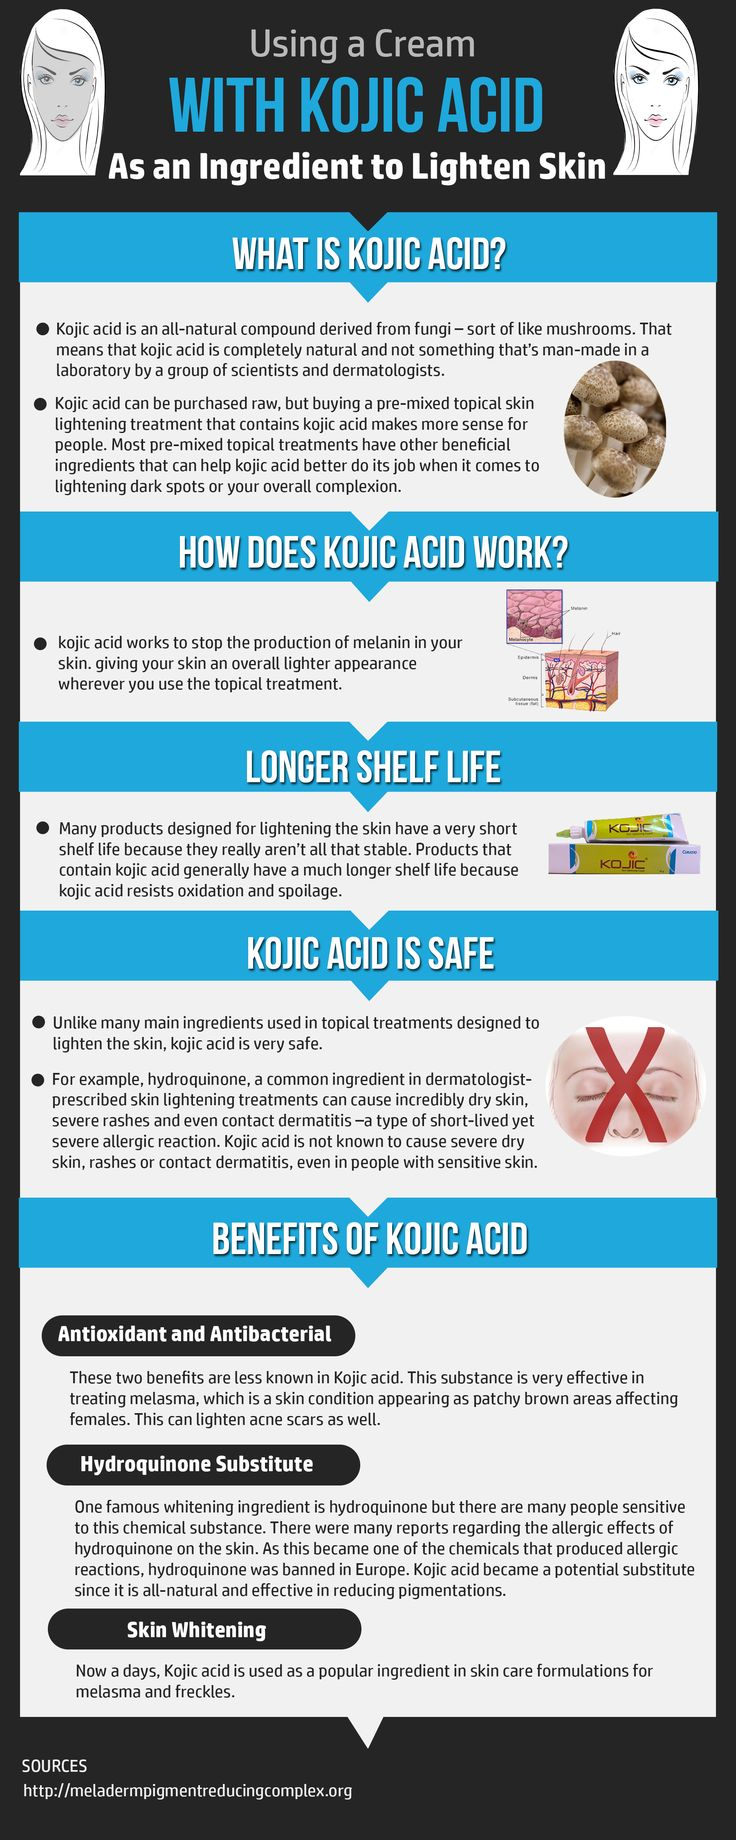 Kojic Acid has been used for years to lighten skin. It is a safe and effective natural ingredient for use in hyperpigmentation of any sort. Whether you have melasma, age spots, acne scarring or freckles you want to fade this works well. No side effects just an even skin tone is what you will get. #infographic Discover the best kojic acid cream here http://hyperpigmentationhelp.com